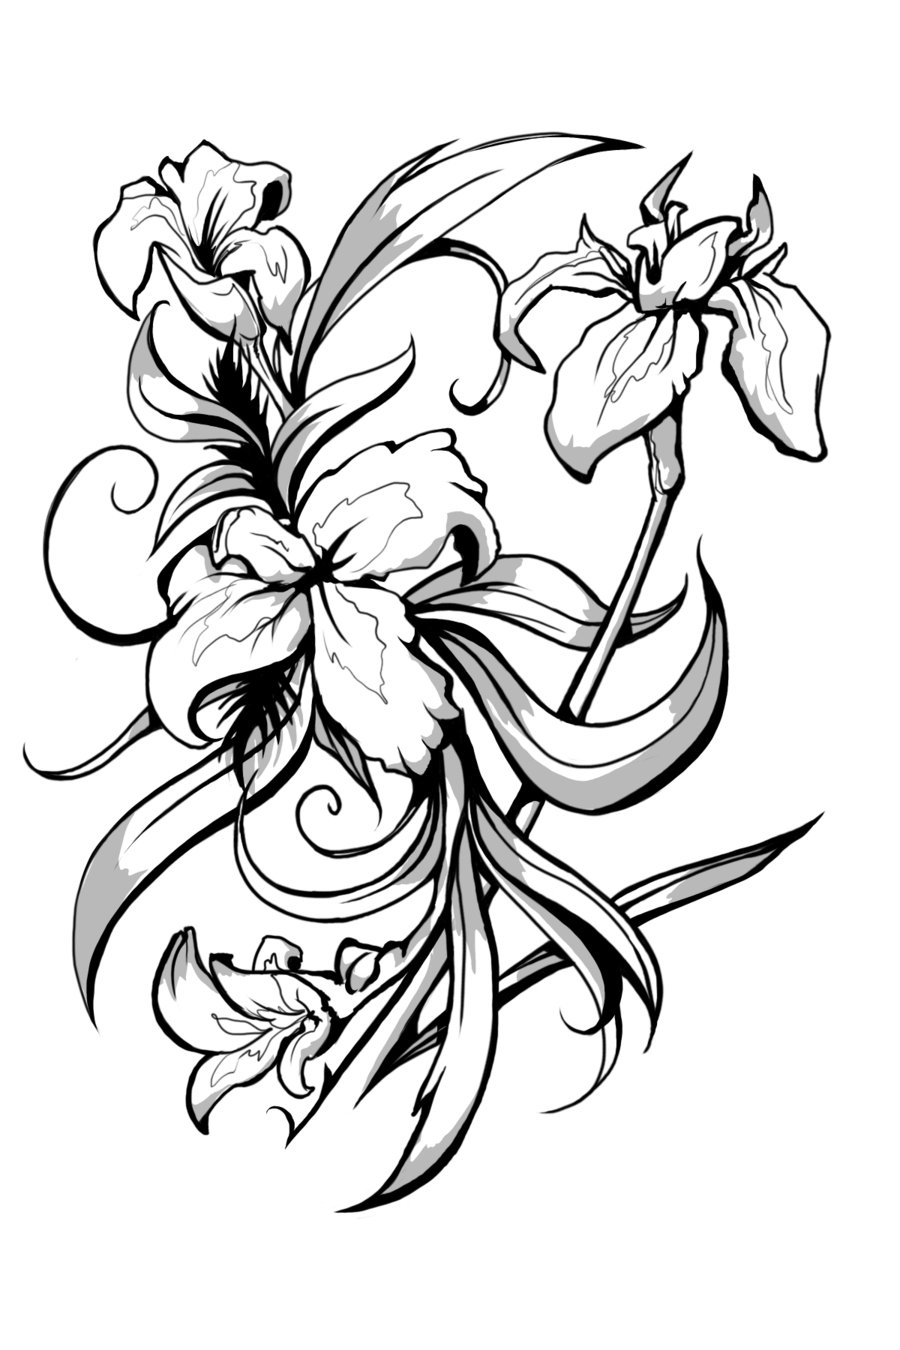 Black And White Iris Flower Tattoo Designs.